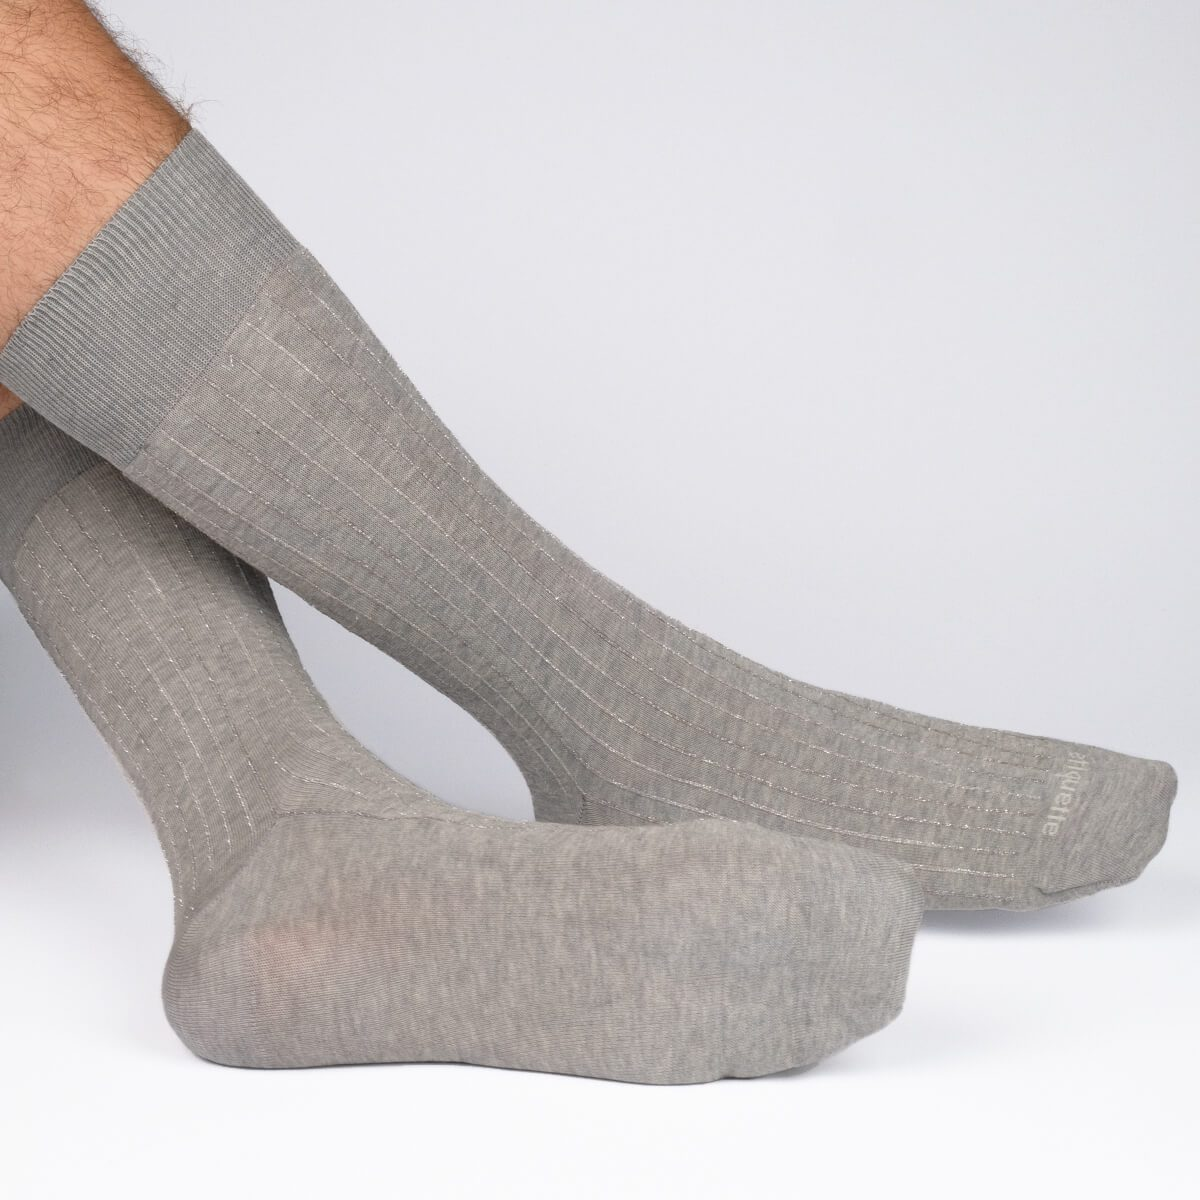 Royal Ribs Metallic - Grey - Mens Socks | Etiquette Clothiers Global Official